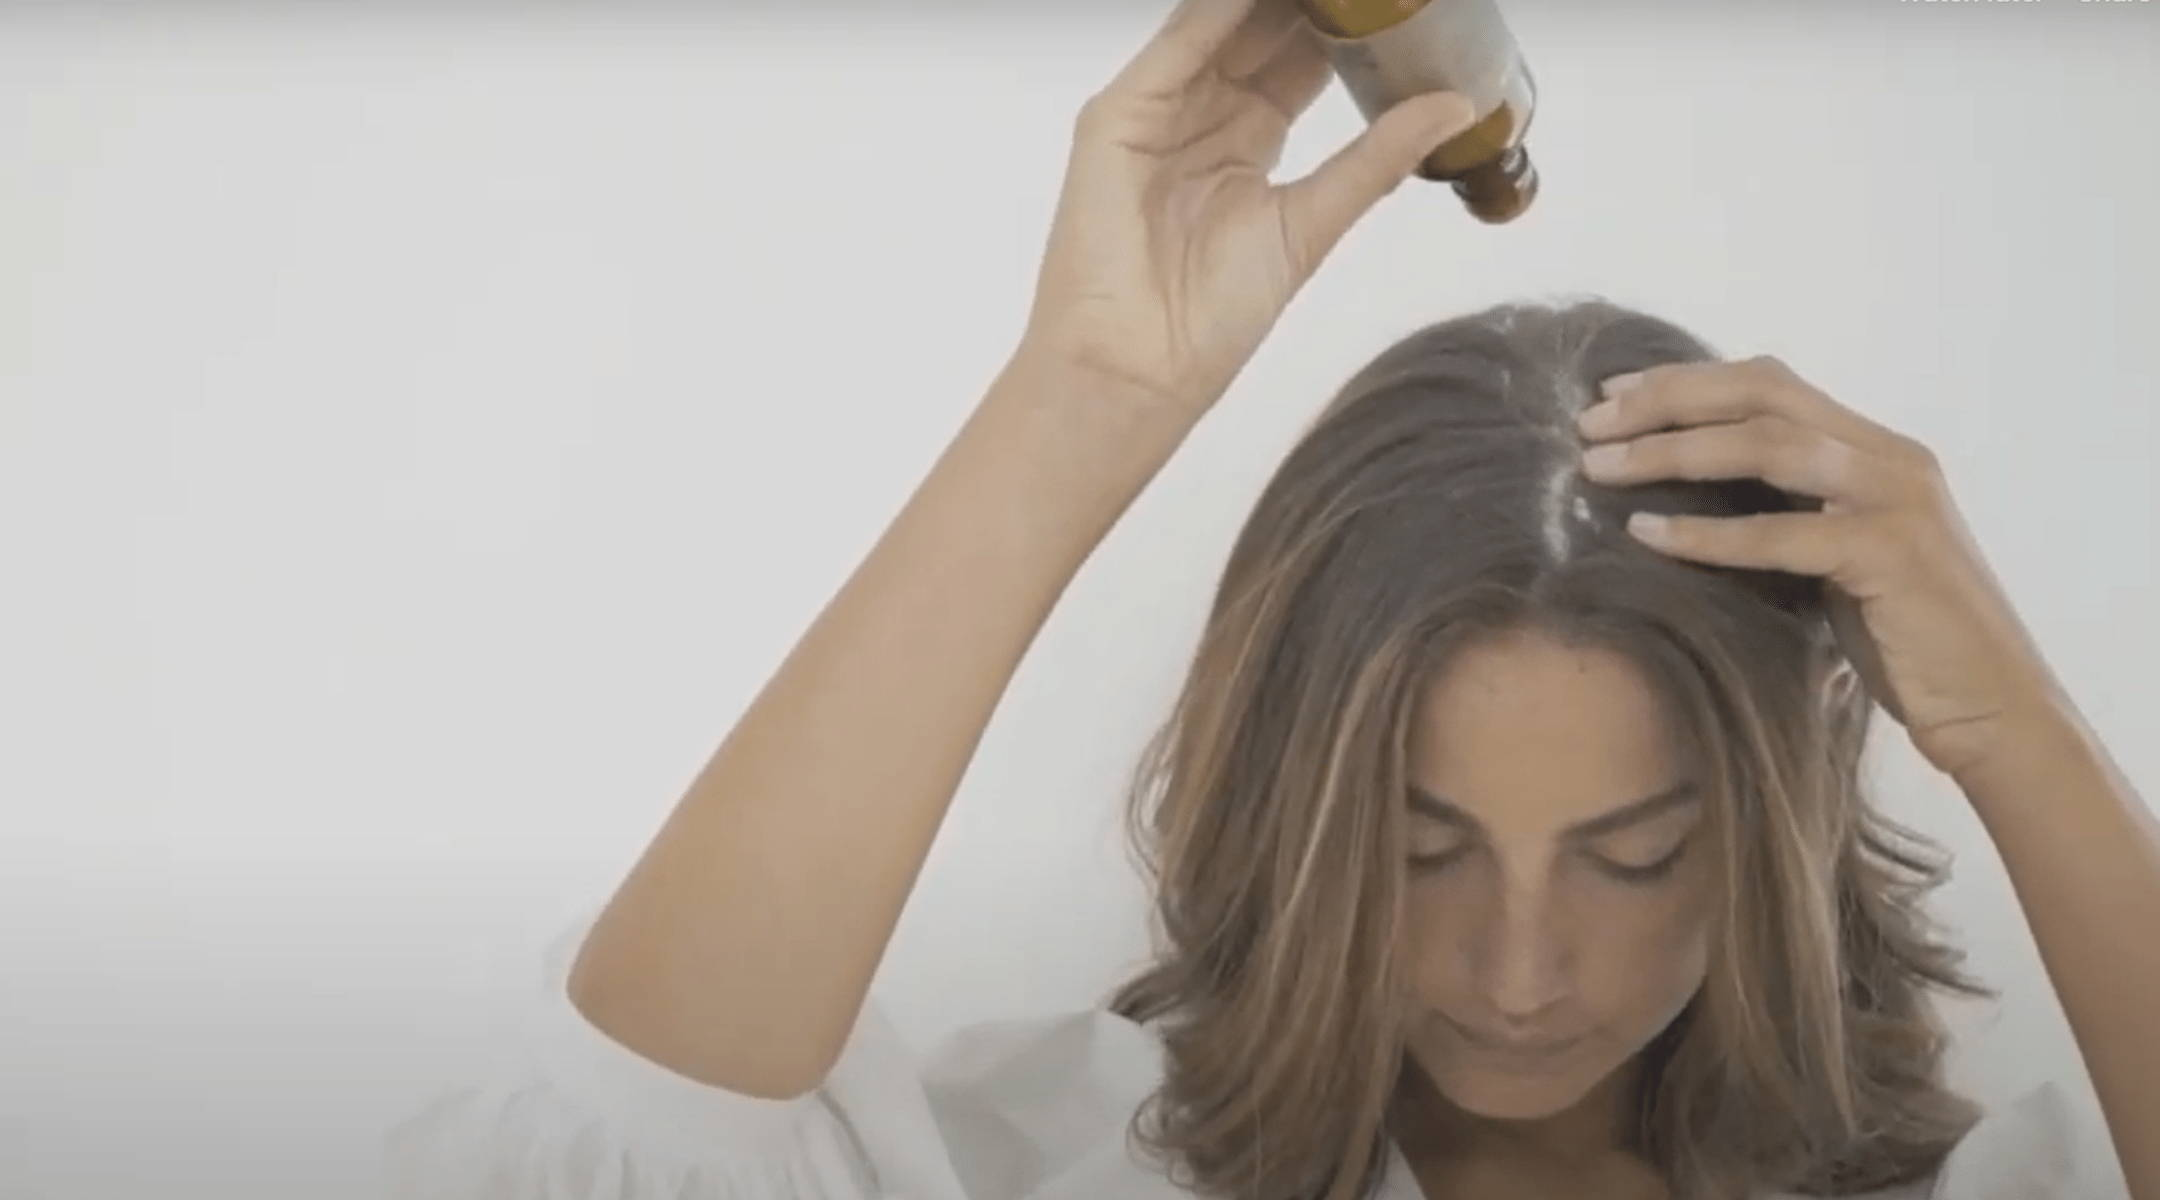 HOW TO CARE FOR YOUR HAIR - PRE- AND POST-WORKOUT